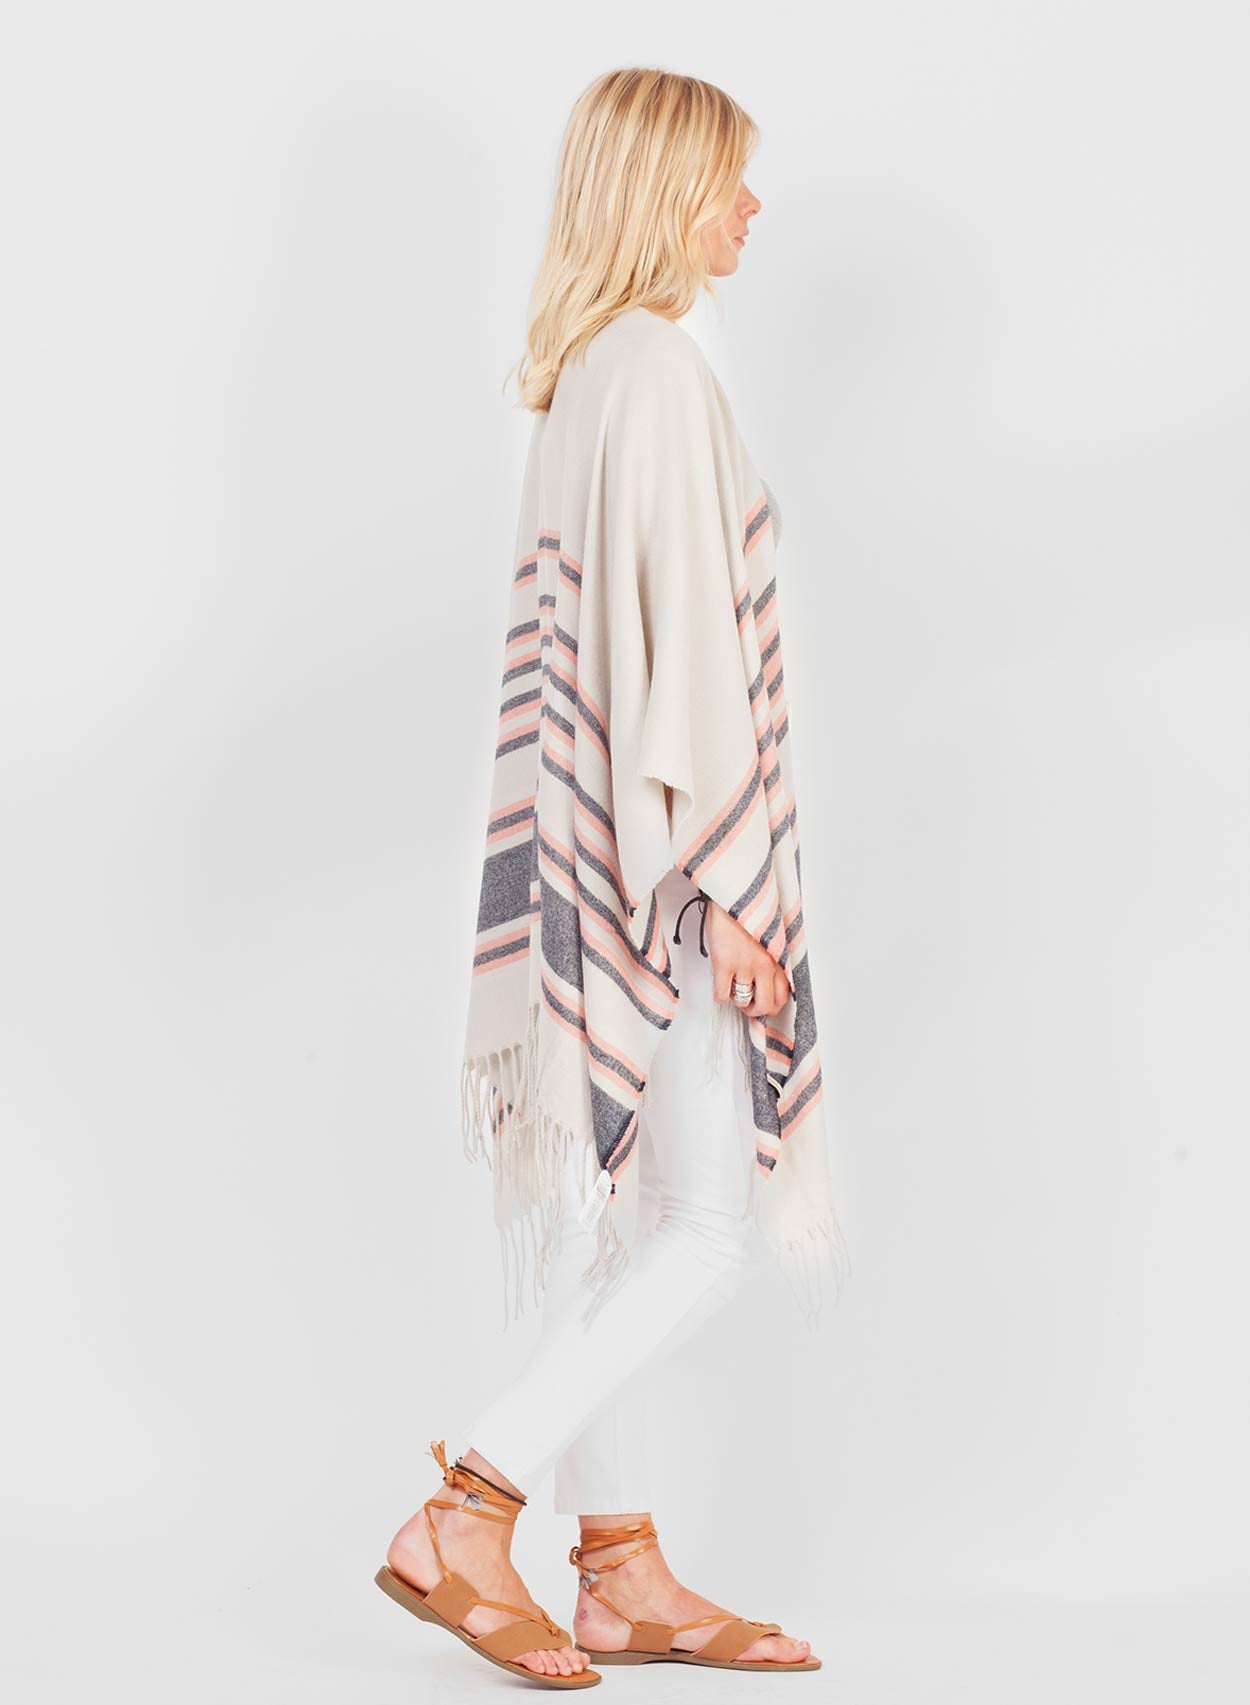 Super Soft White Blanket Cape - LoveClothing.com - 6